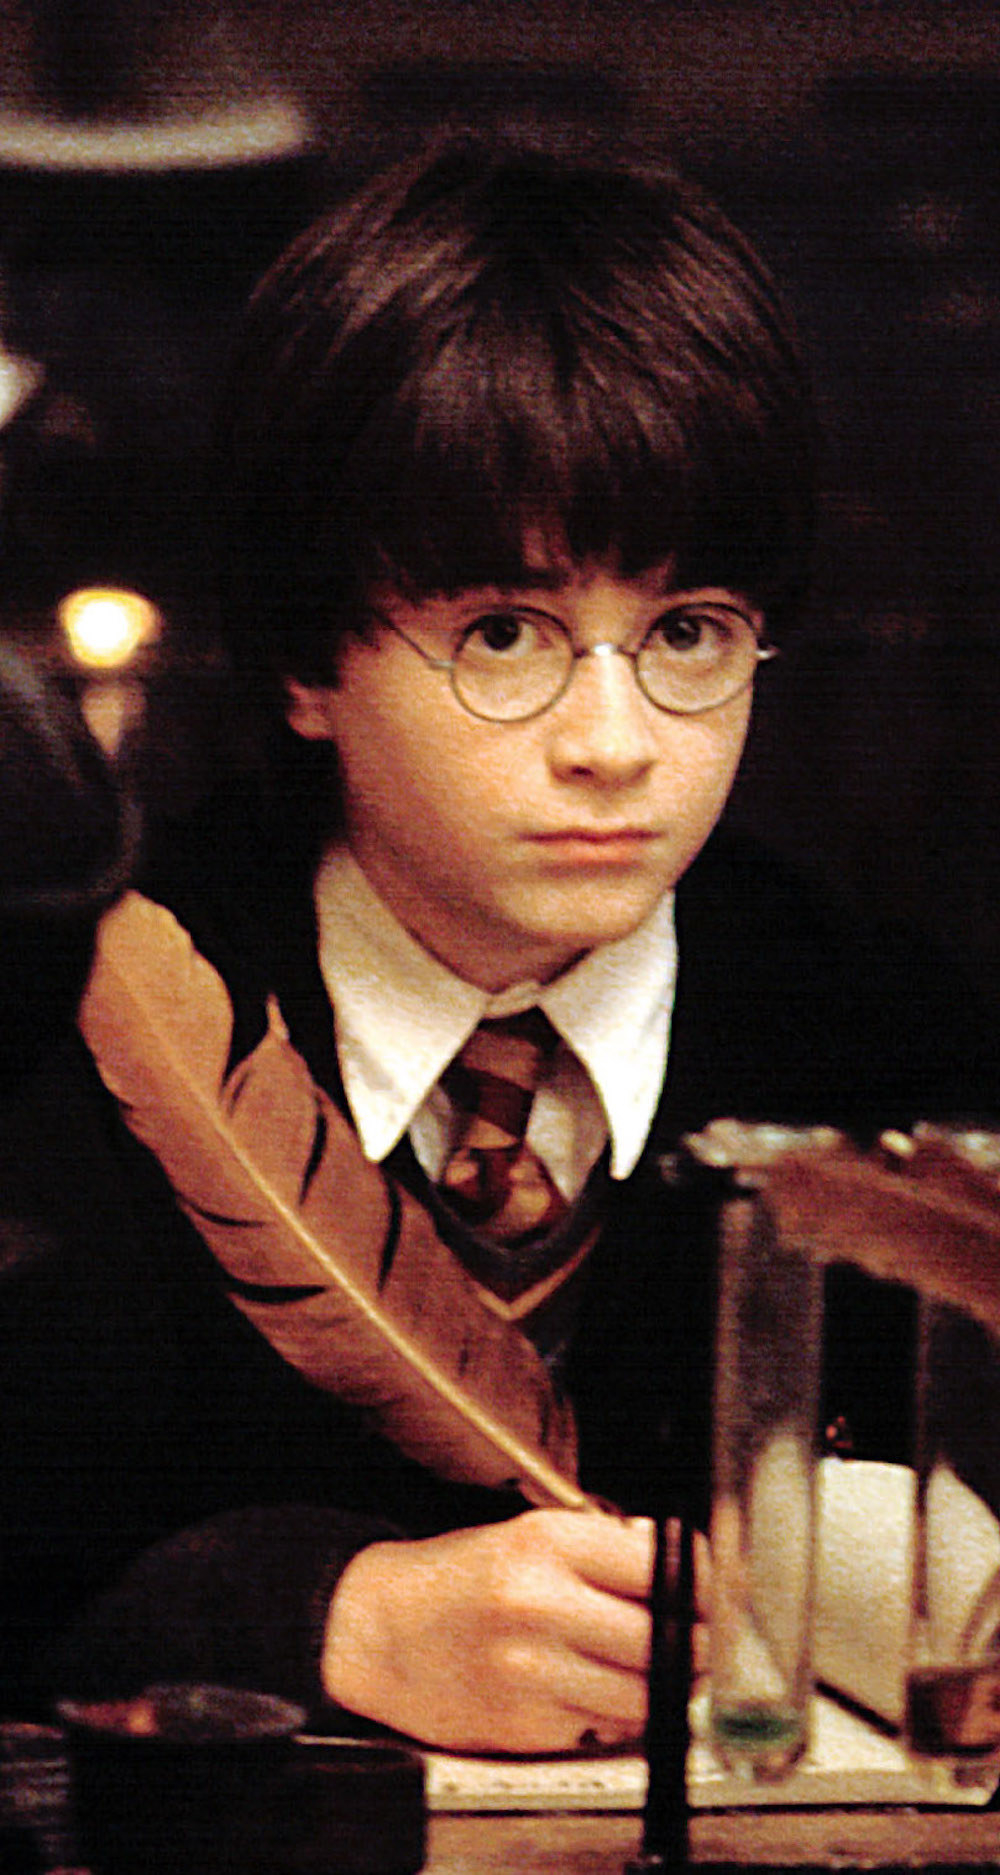 Daniel Radcliffe wearing round glasses while in a Hogwarts school uniform, writing